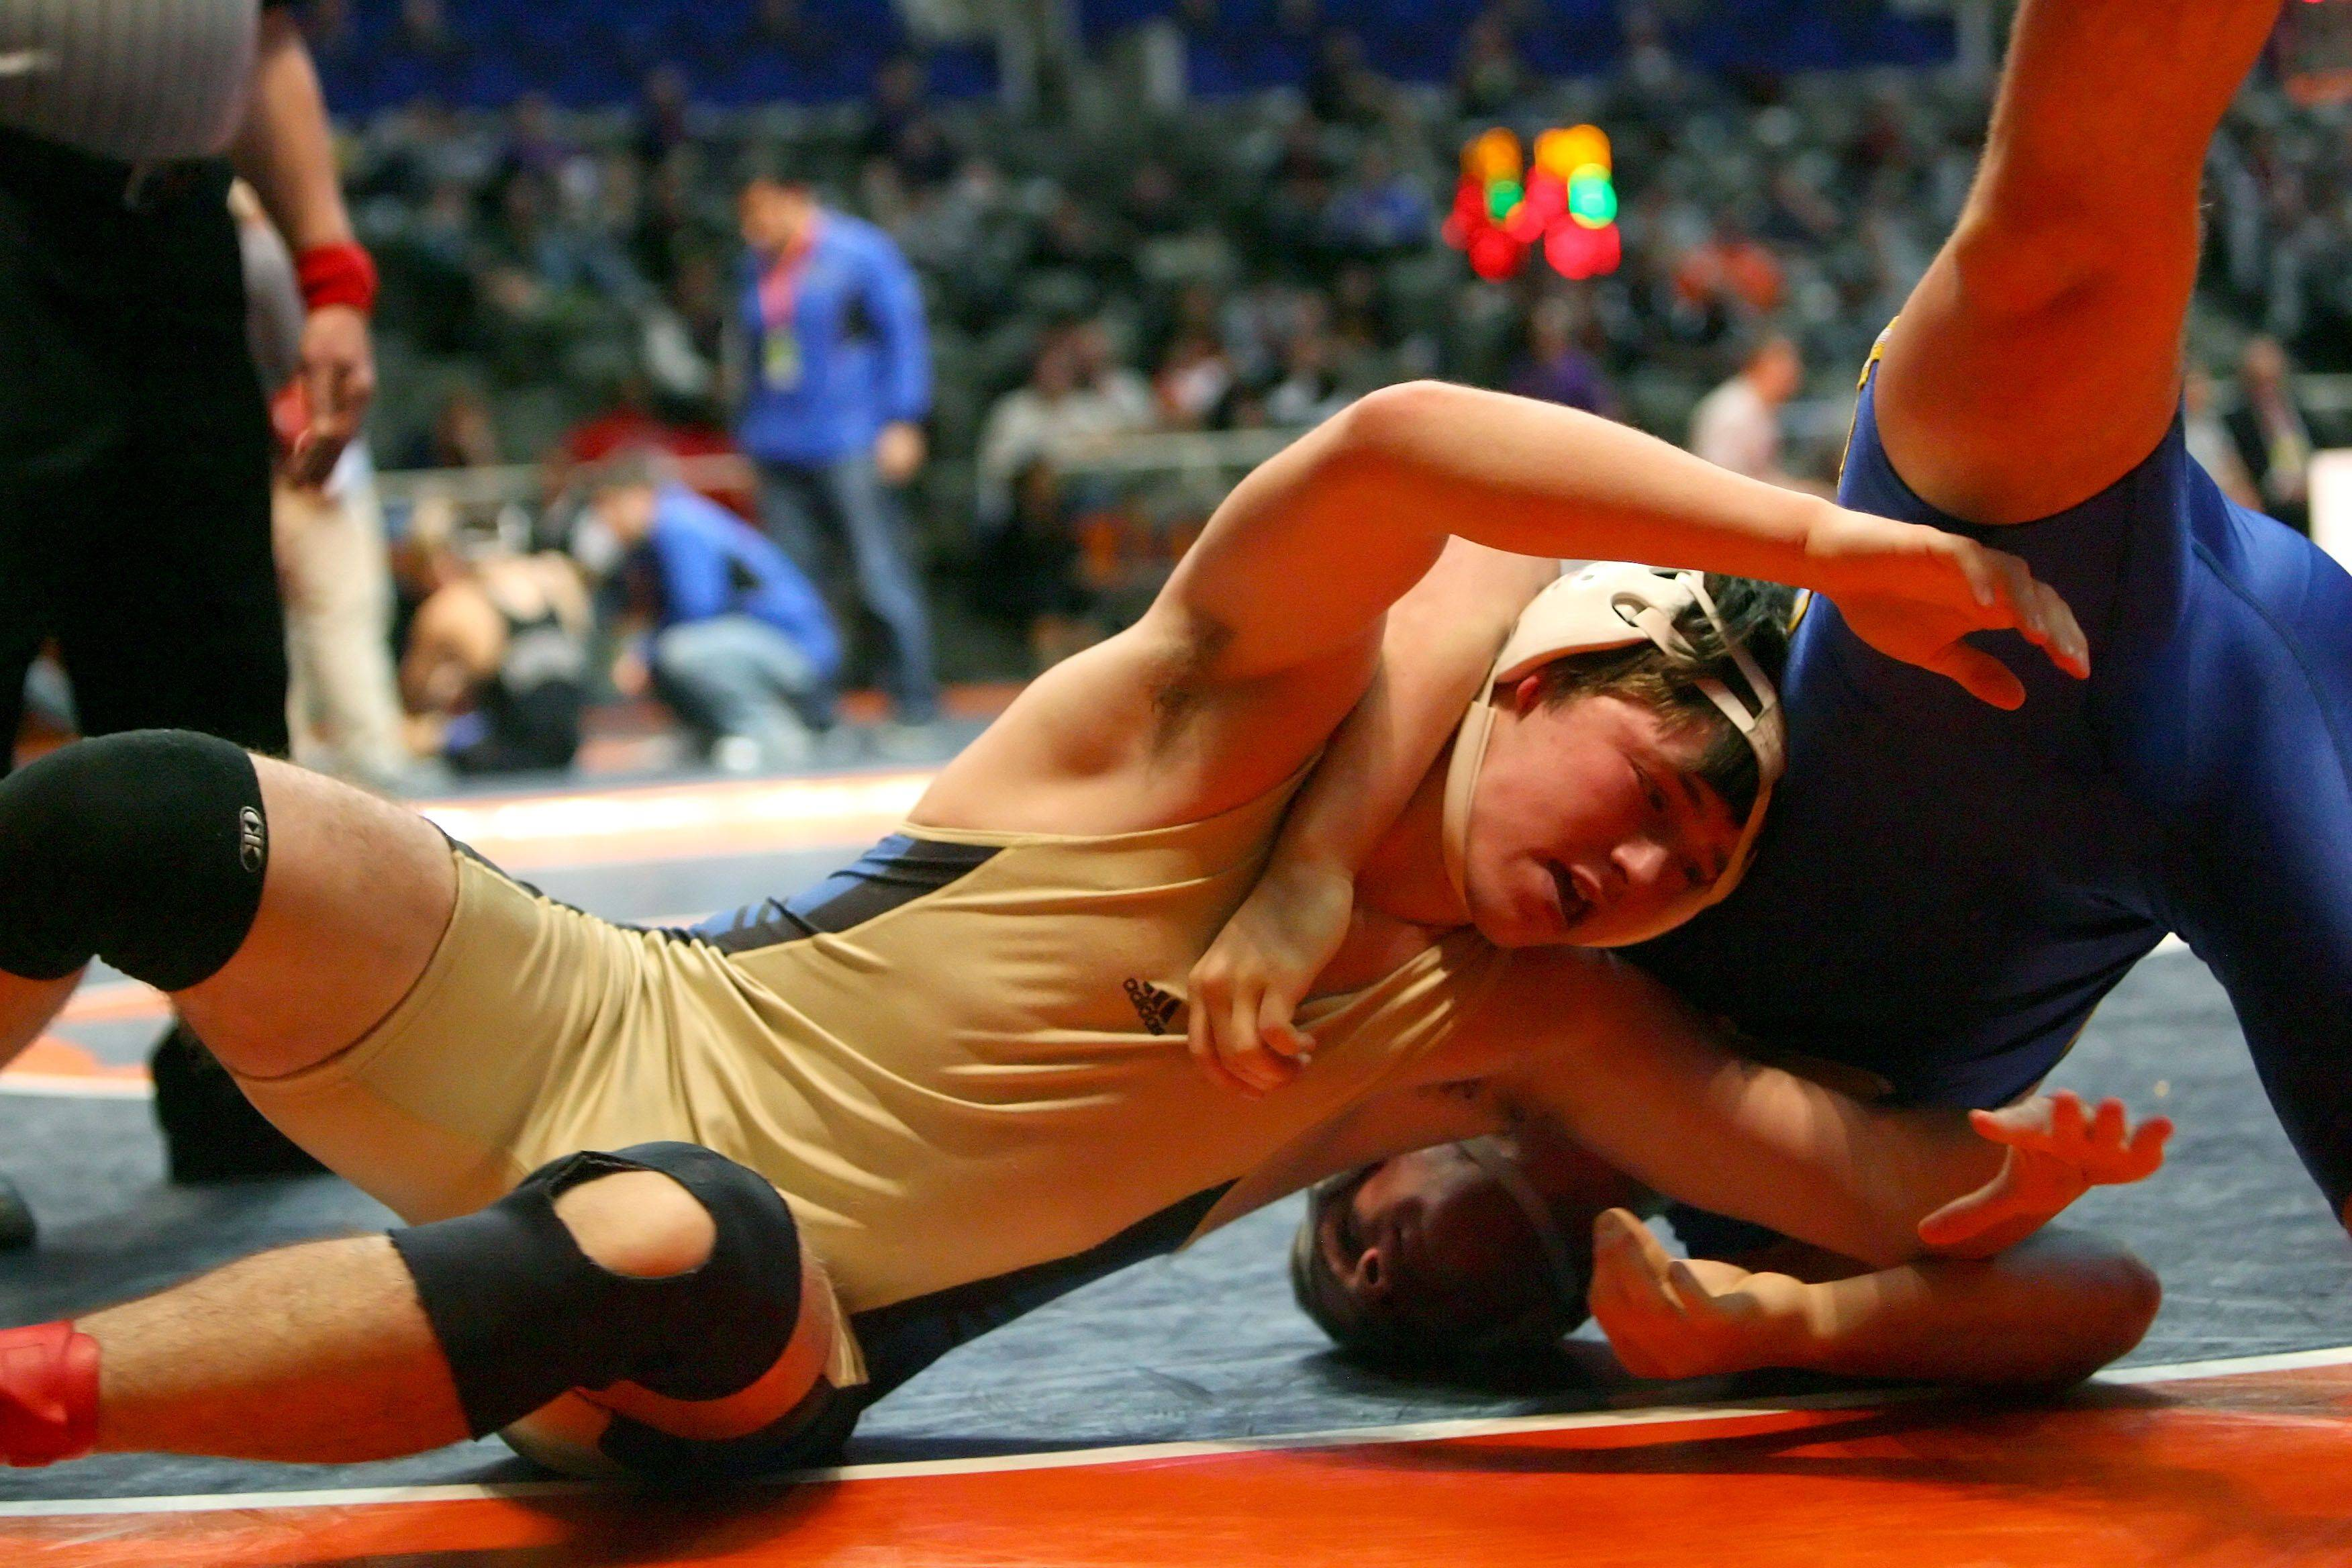 Wheeling's Eddie Scanlon wrestles Orland Park's Brandon Lopez at 171 pounds in the 3a wrestlebacks during state wrestling Friday in Champaign.